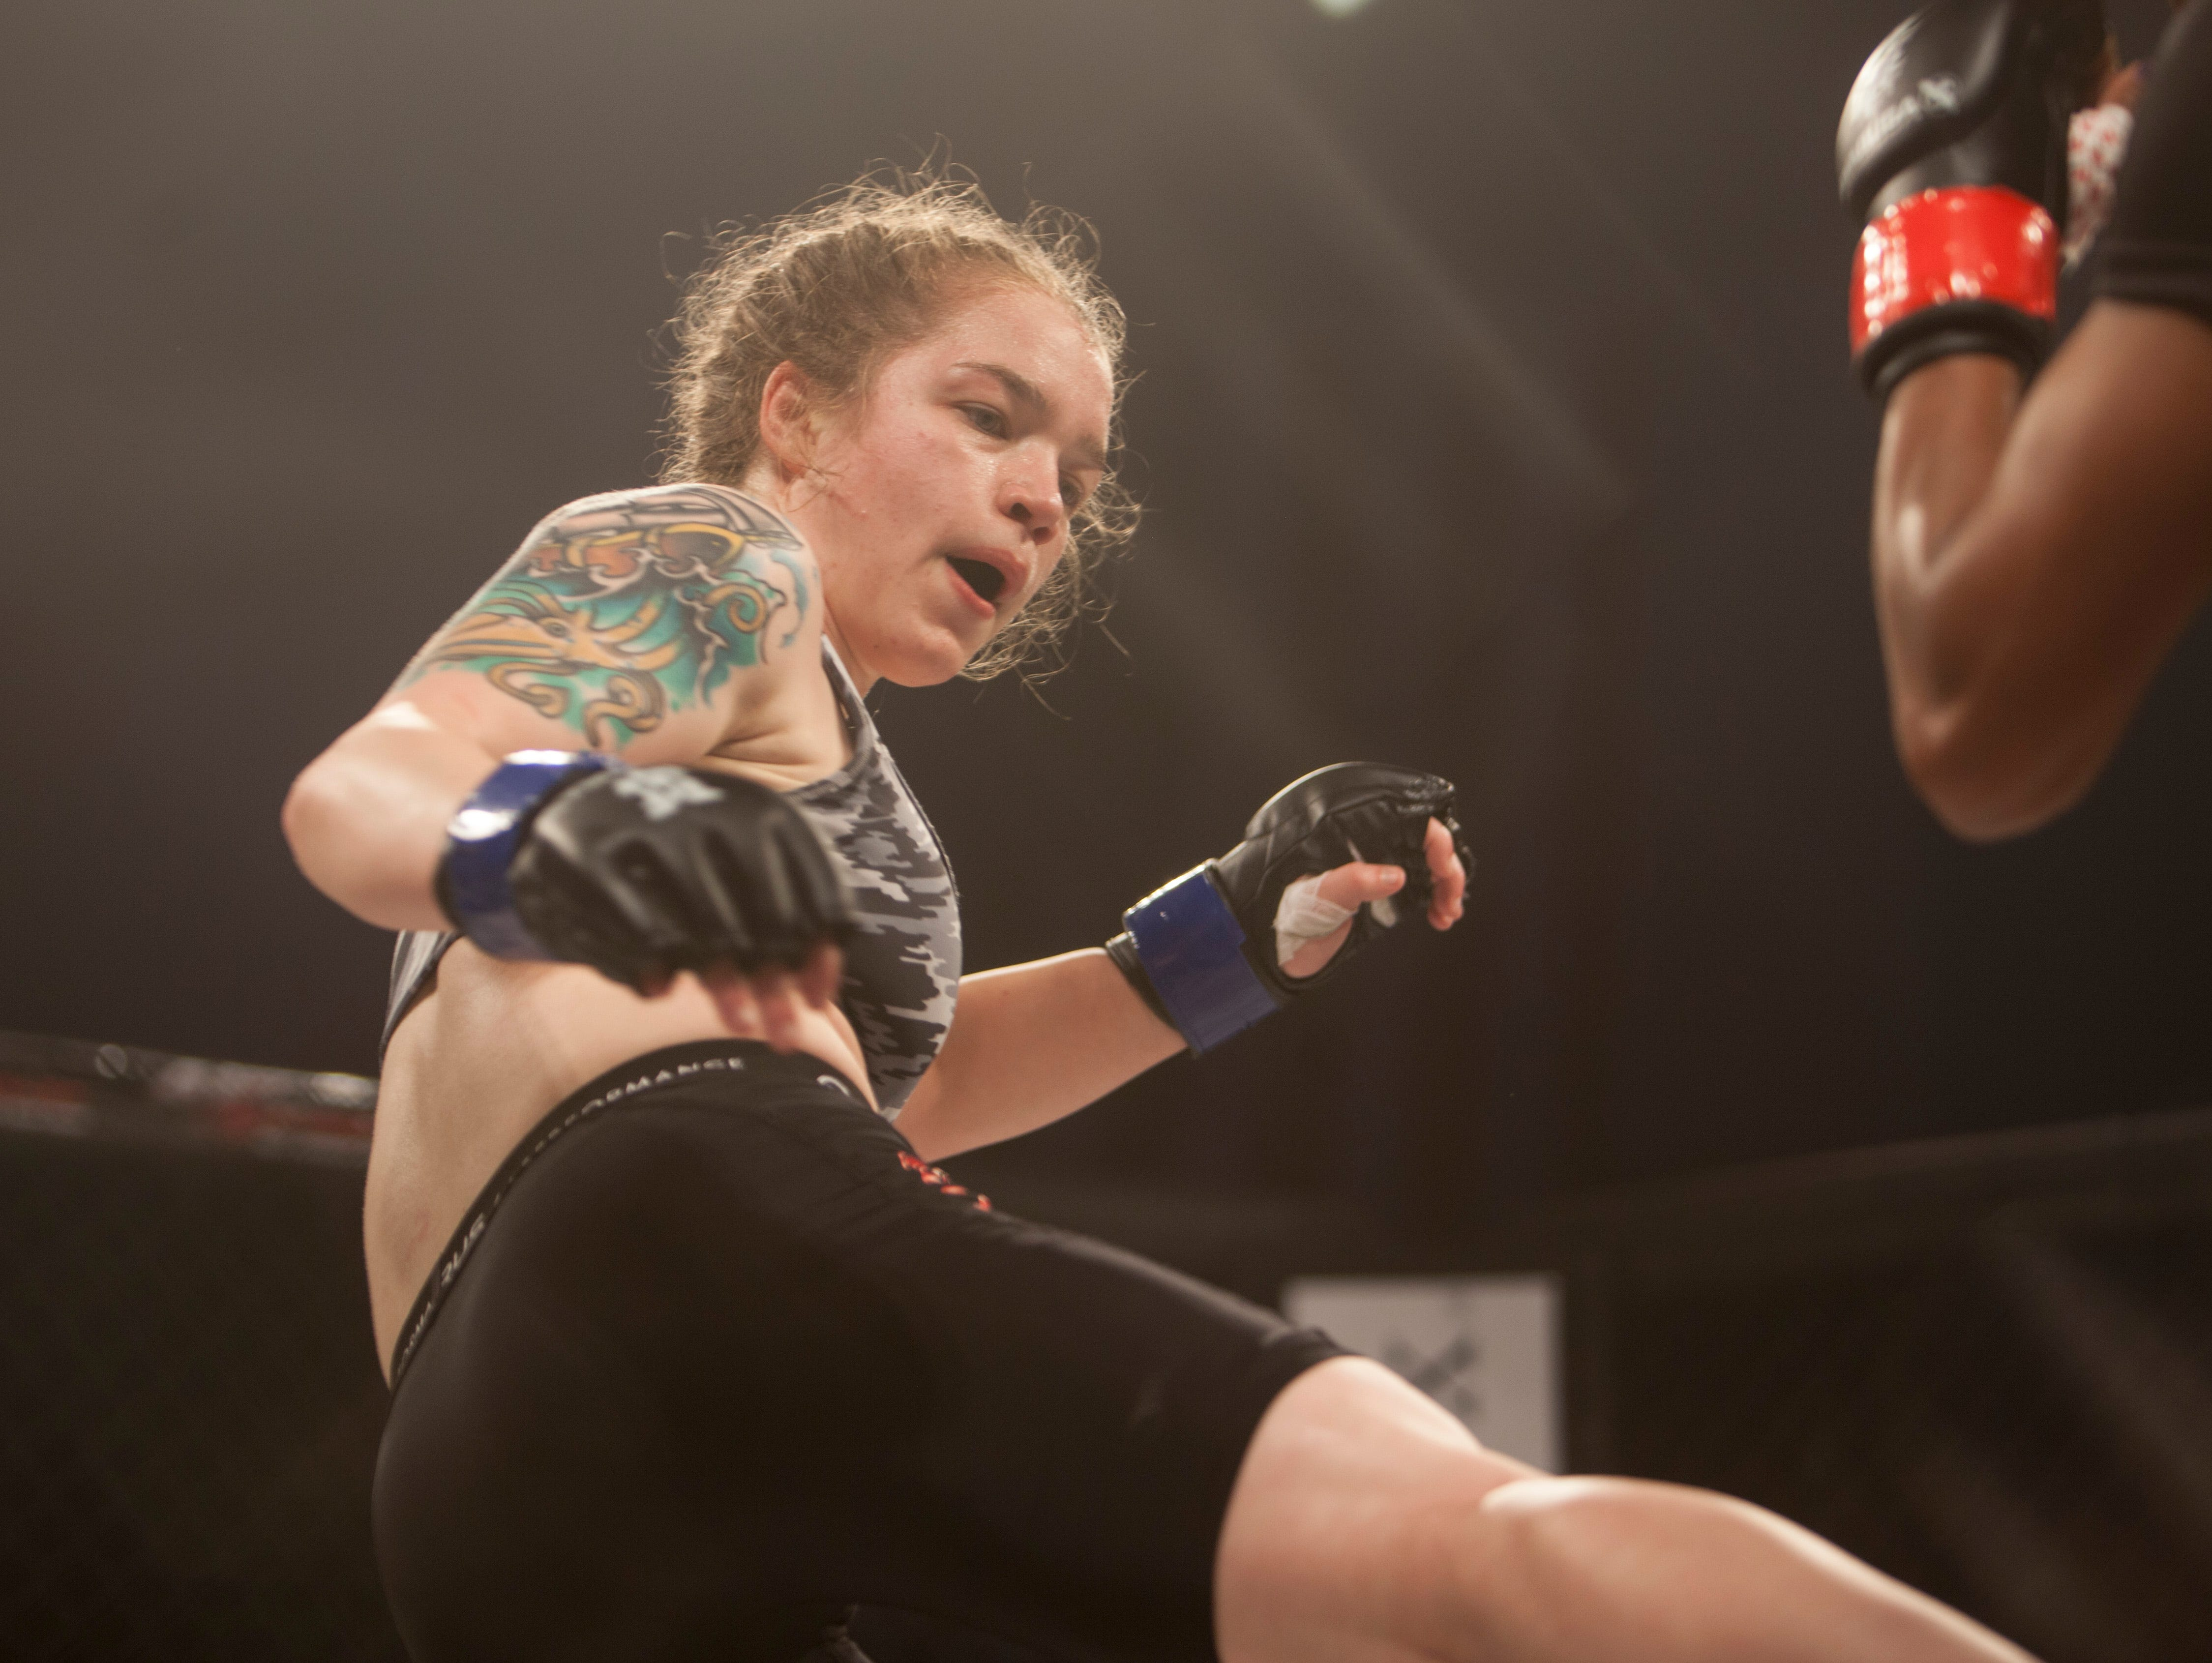 Allison Goodwin, in the blue corner, defeats Antinicia Ragges during Mayhem in Mesquite at the Casablanca Saturday, Dec. 15, 2018.